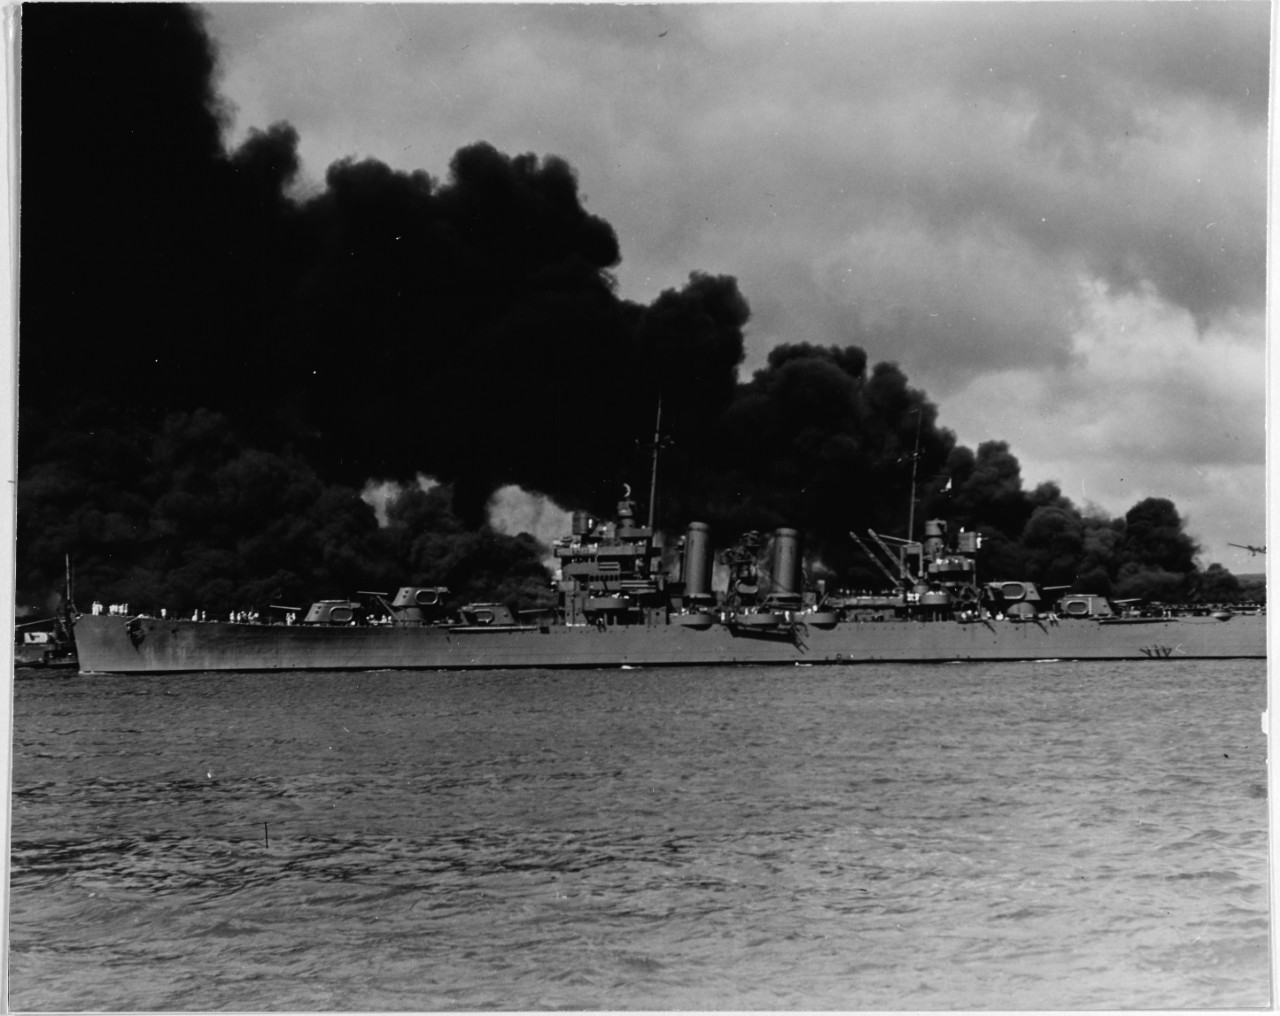 Phoenix steams past burning West Virginia (BB-48) (left) and Arizona (BB-39) (right) along the south side of Ford Island as she sorties during the Japanese attack on Pearl Harbor, T.H., 7 December 1941. (Naval History and Heritage Command Photograph NH 50766)